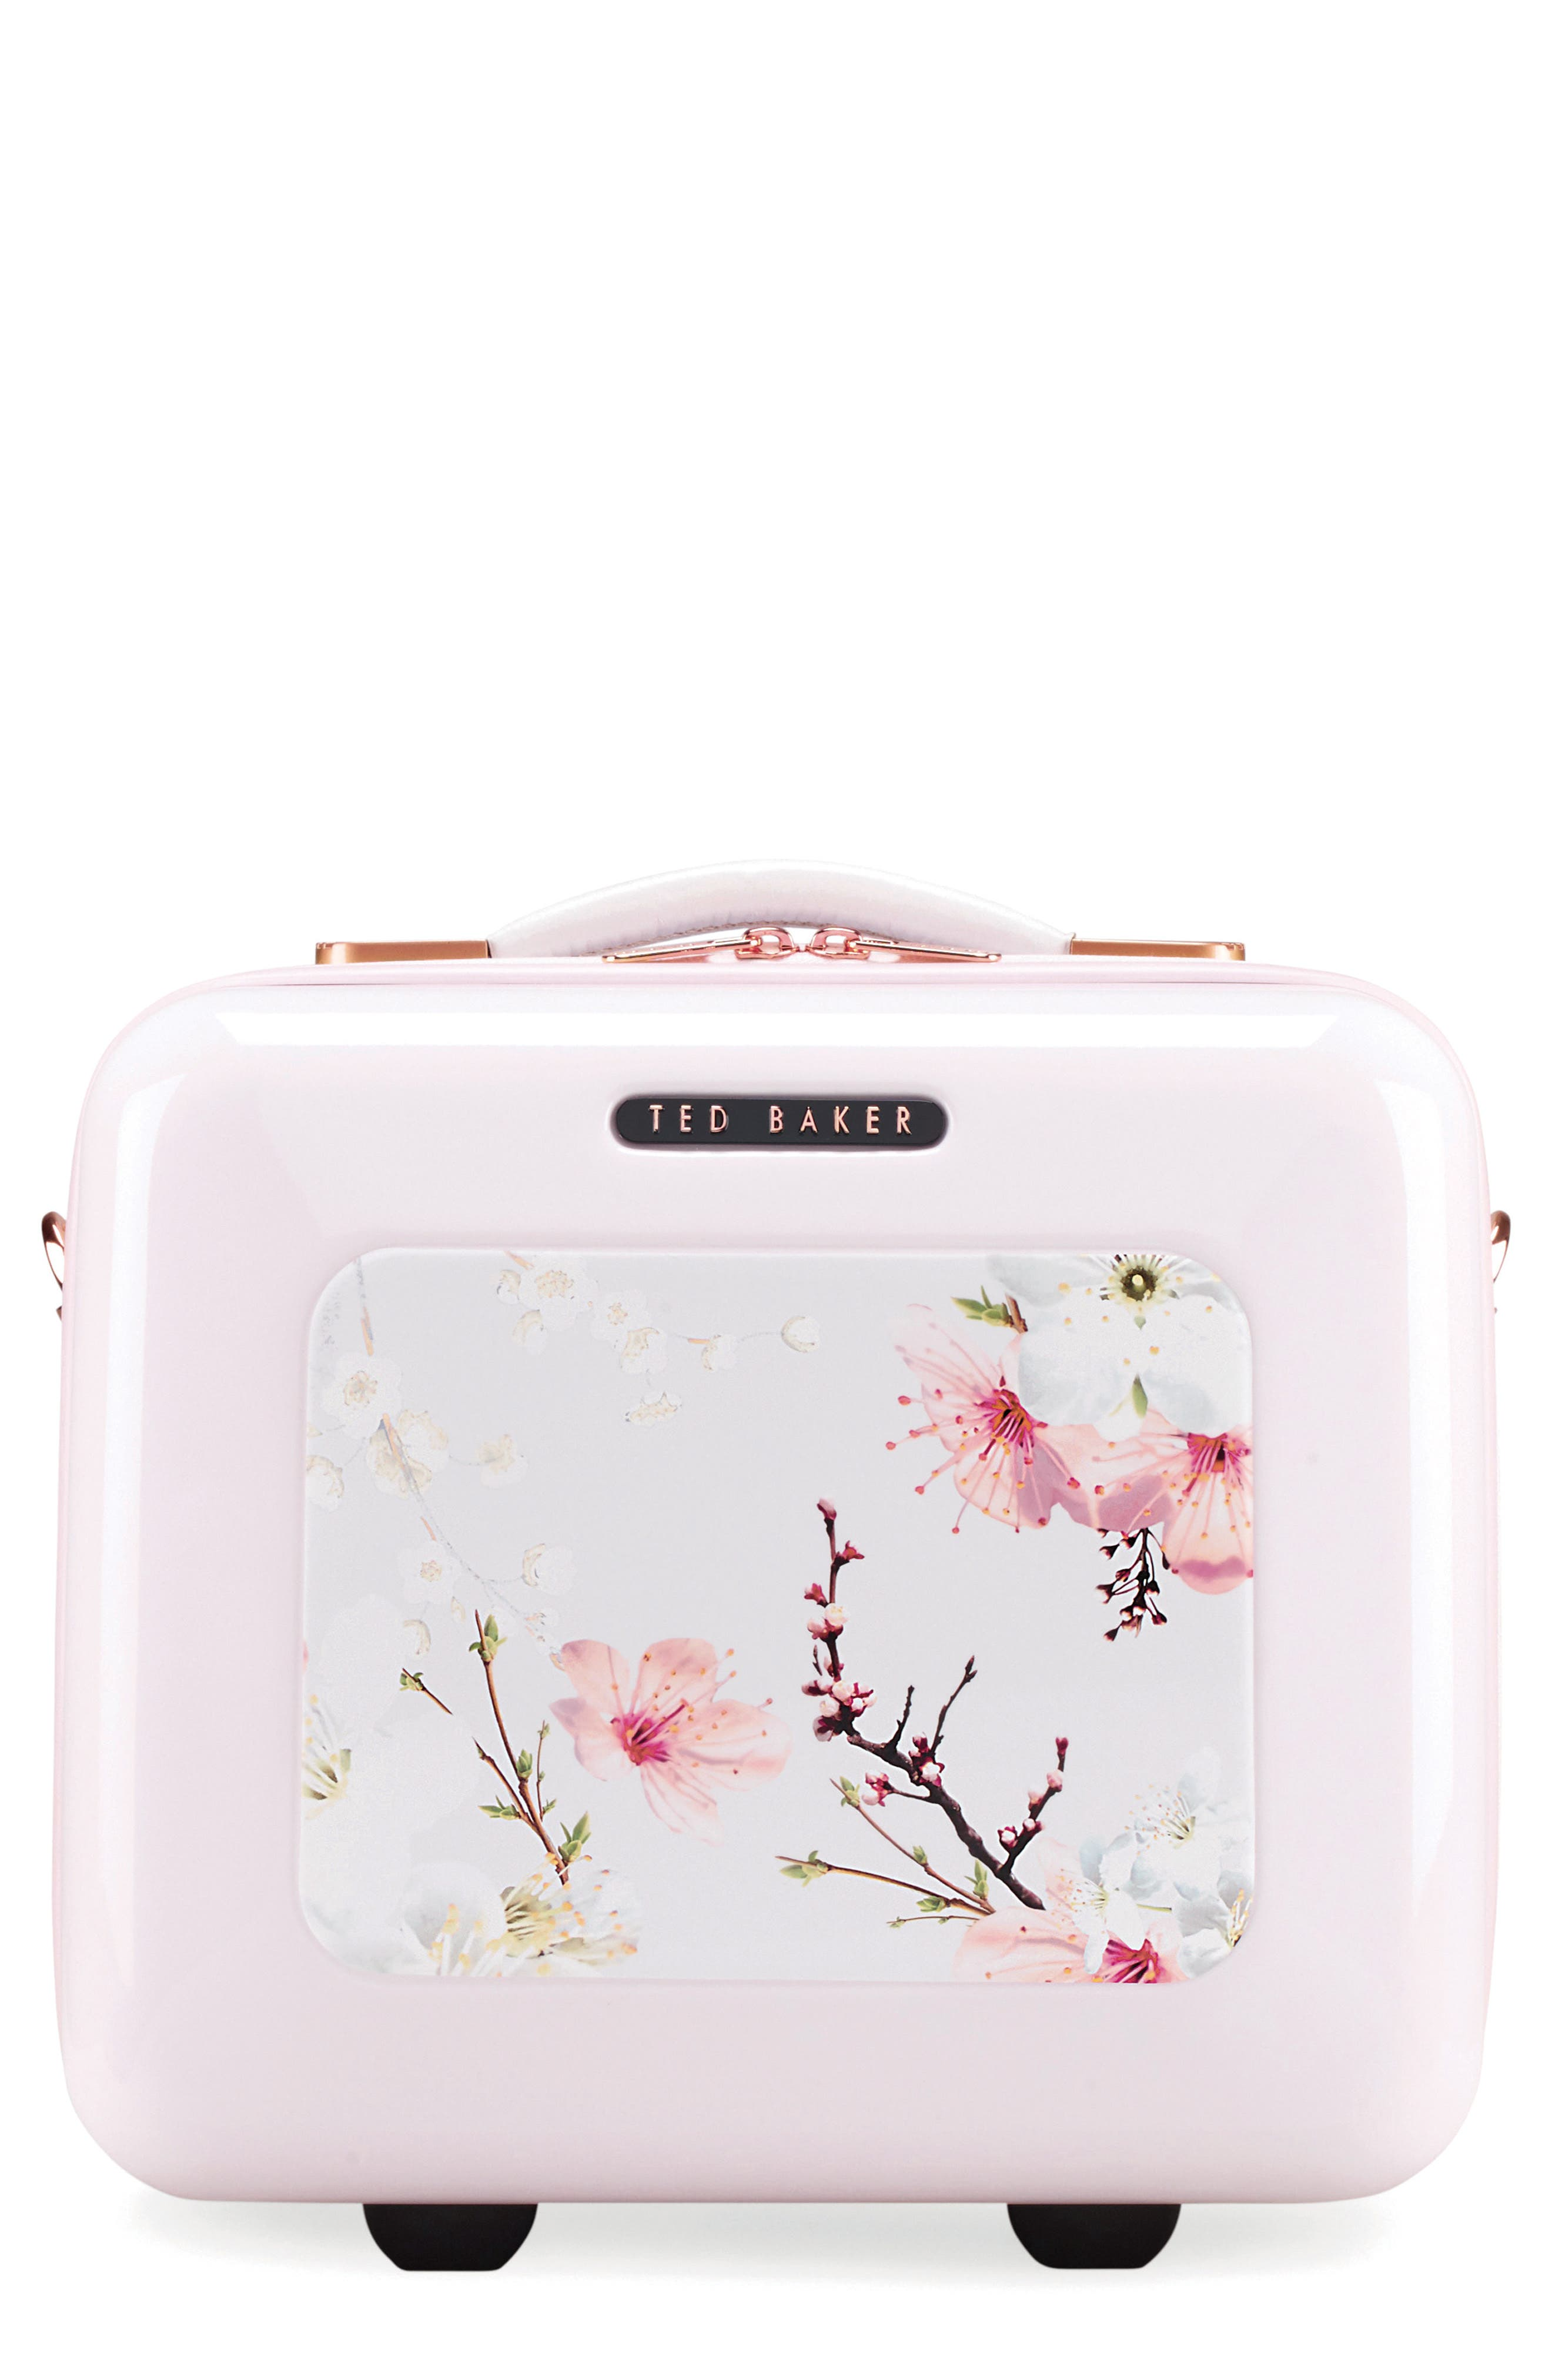 Blossoms Vanity Case,                             Main thumbnail 1, color,                             650